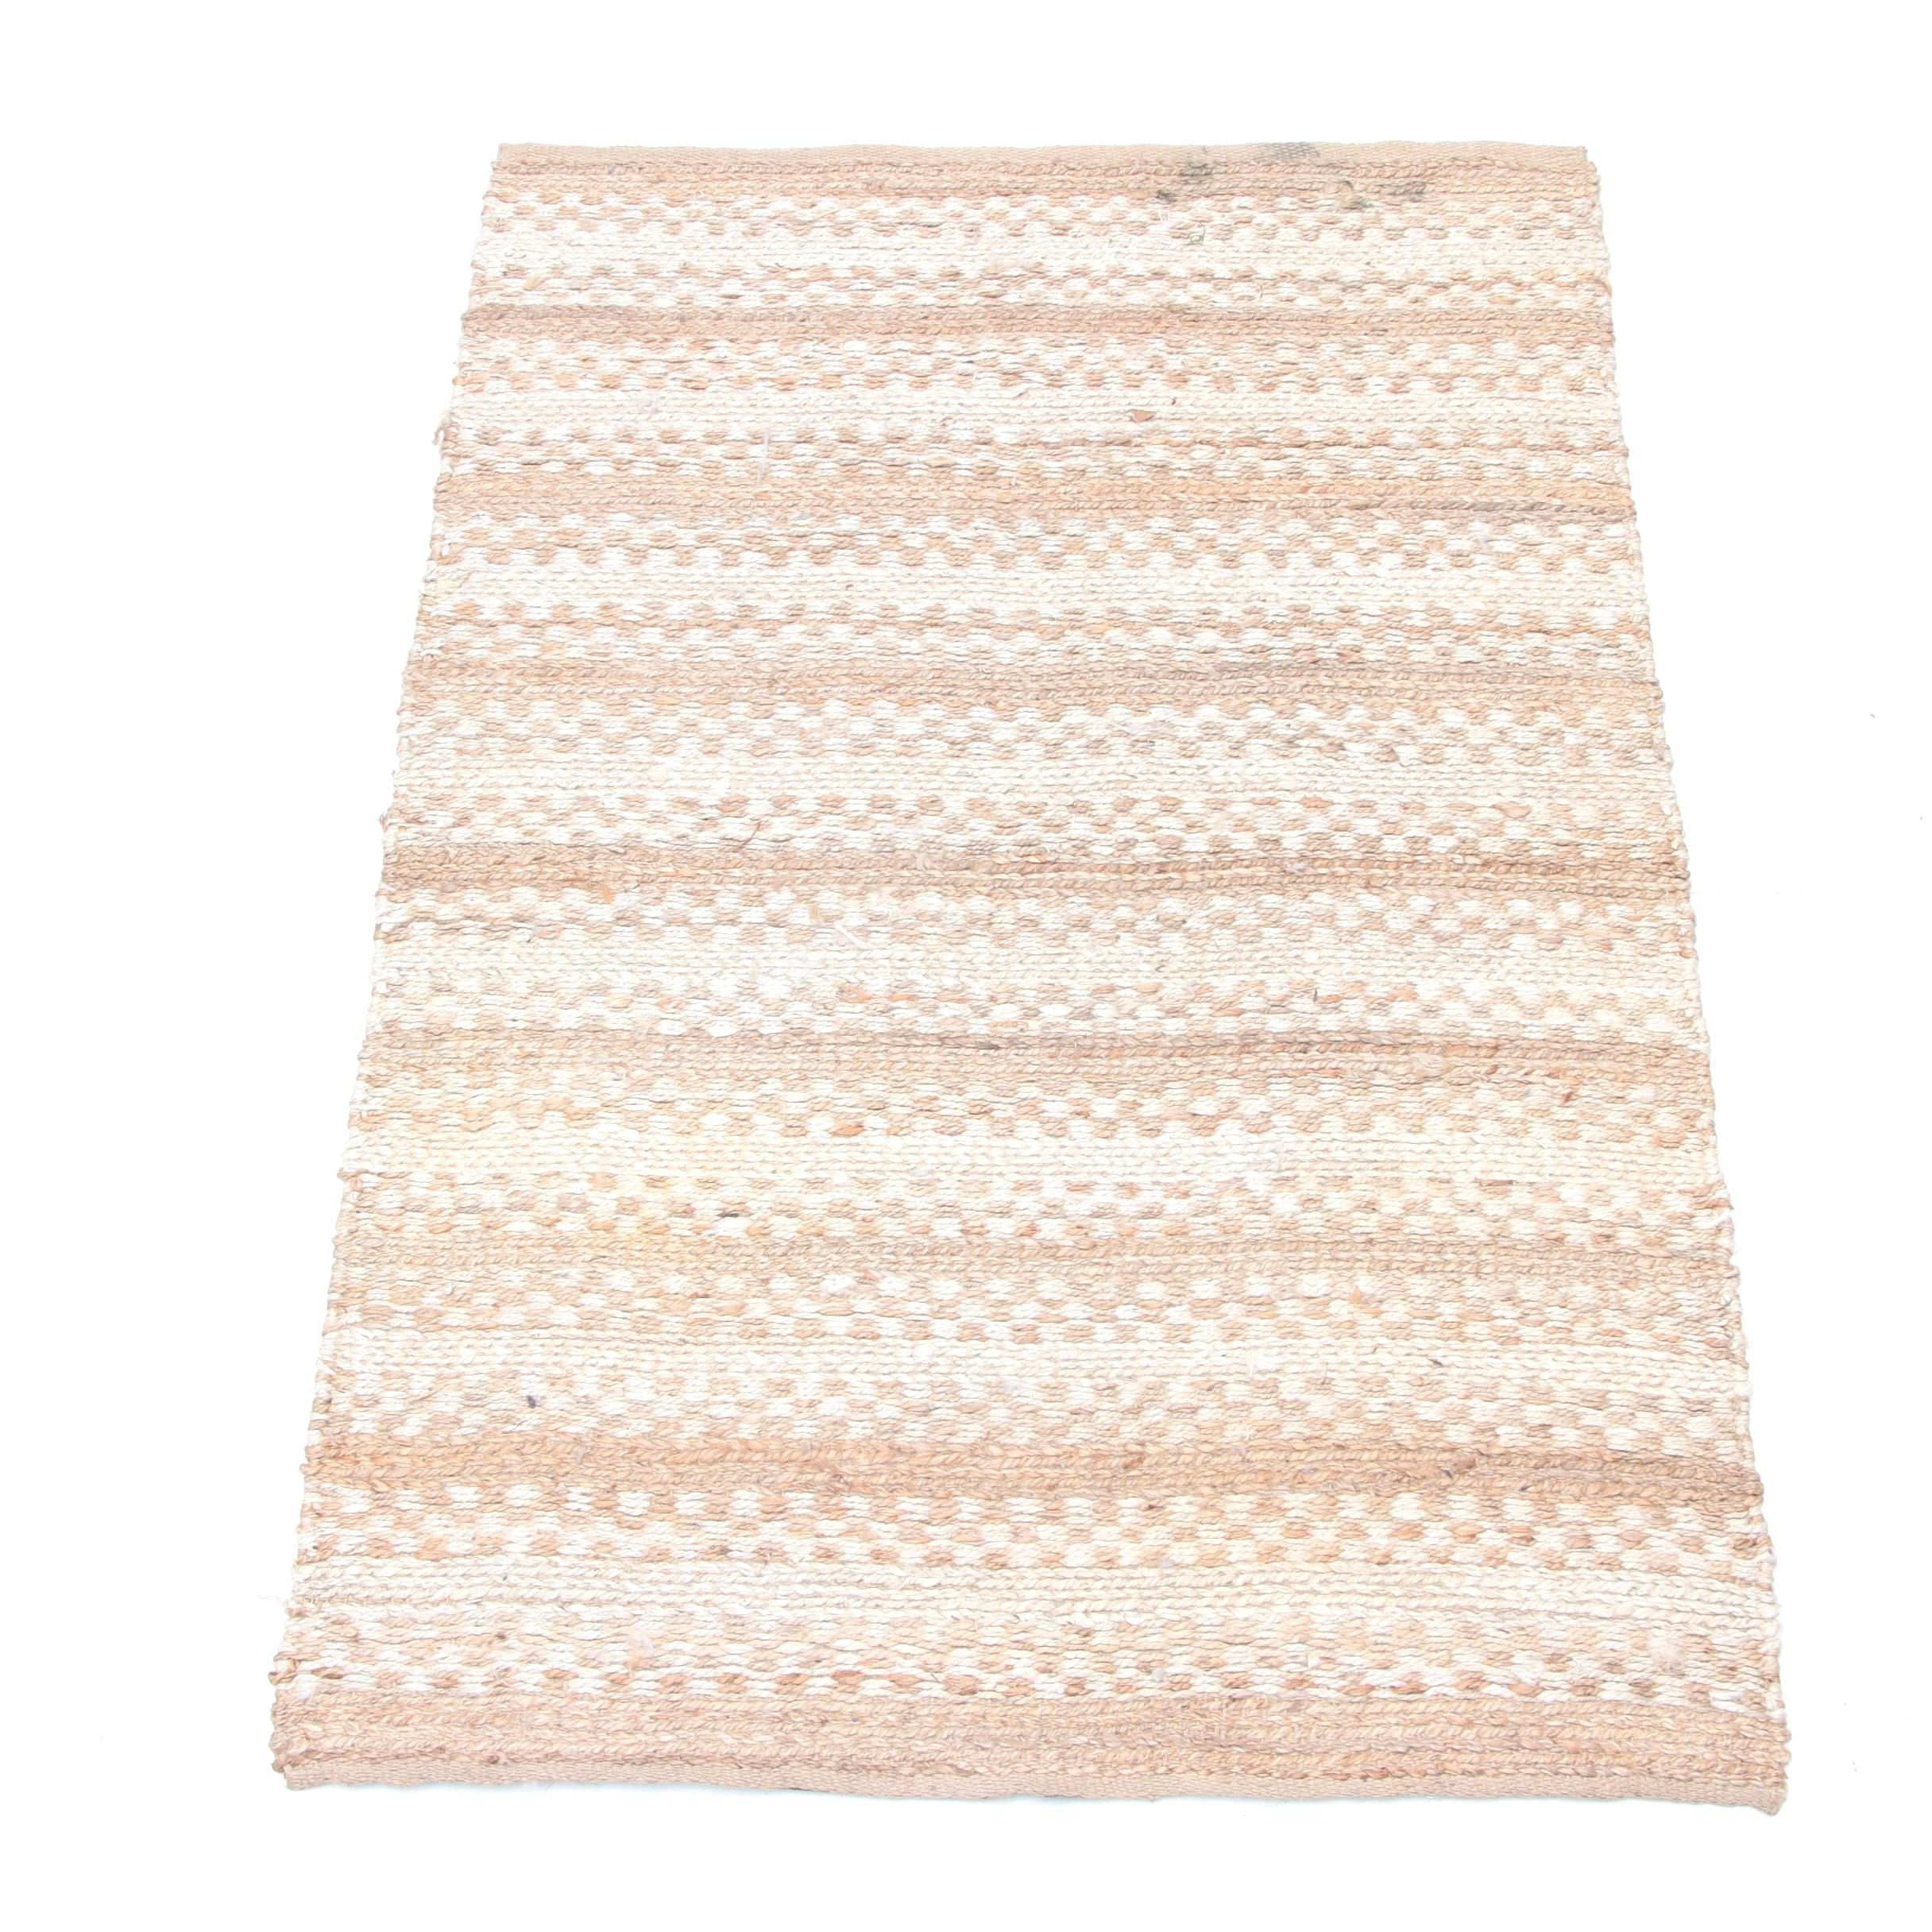 Woven and Tufted Handmade Jute Area Rug by Woodstock